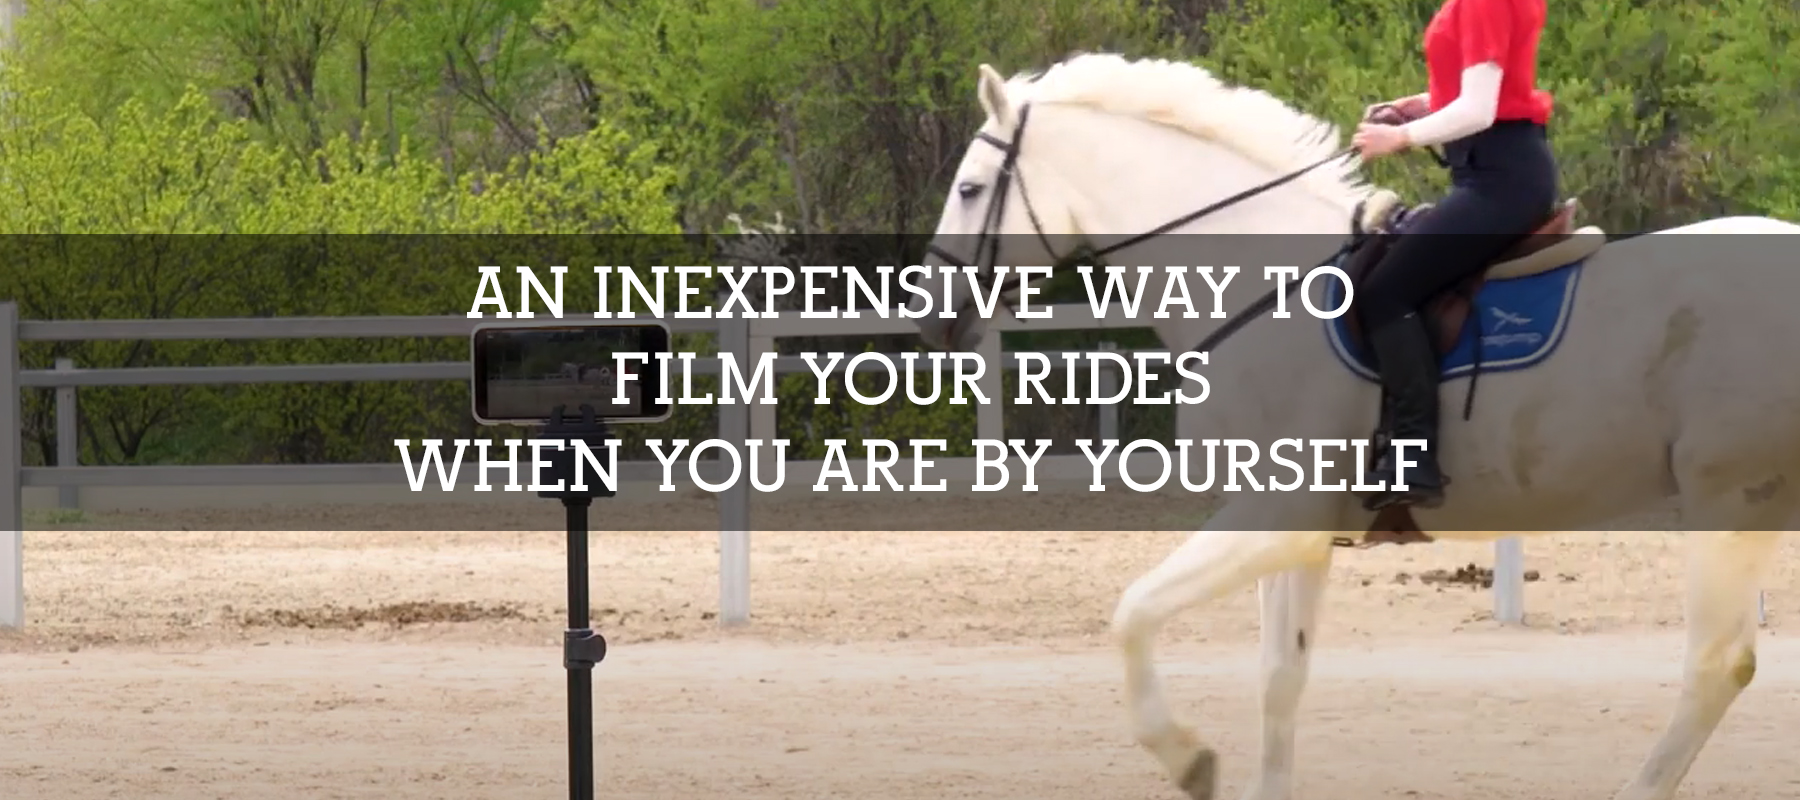 Film Your Rides with Pivo